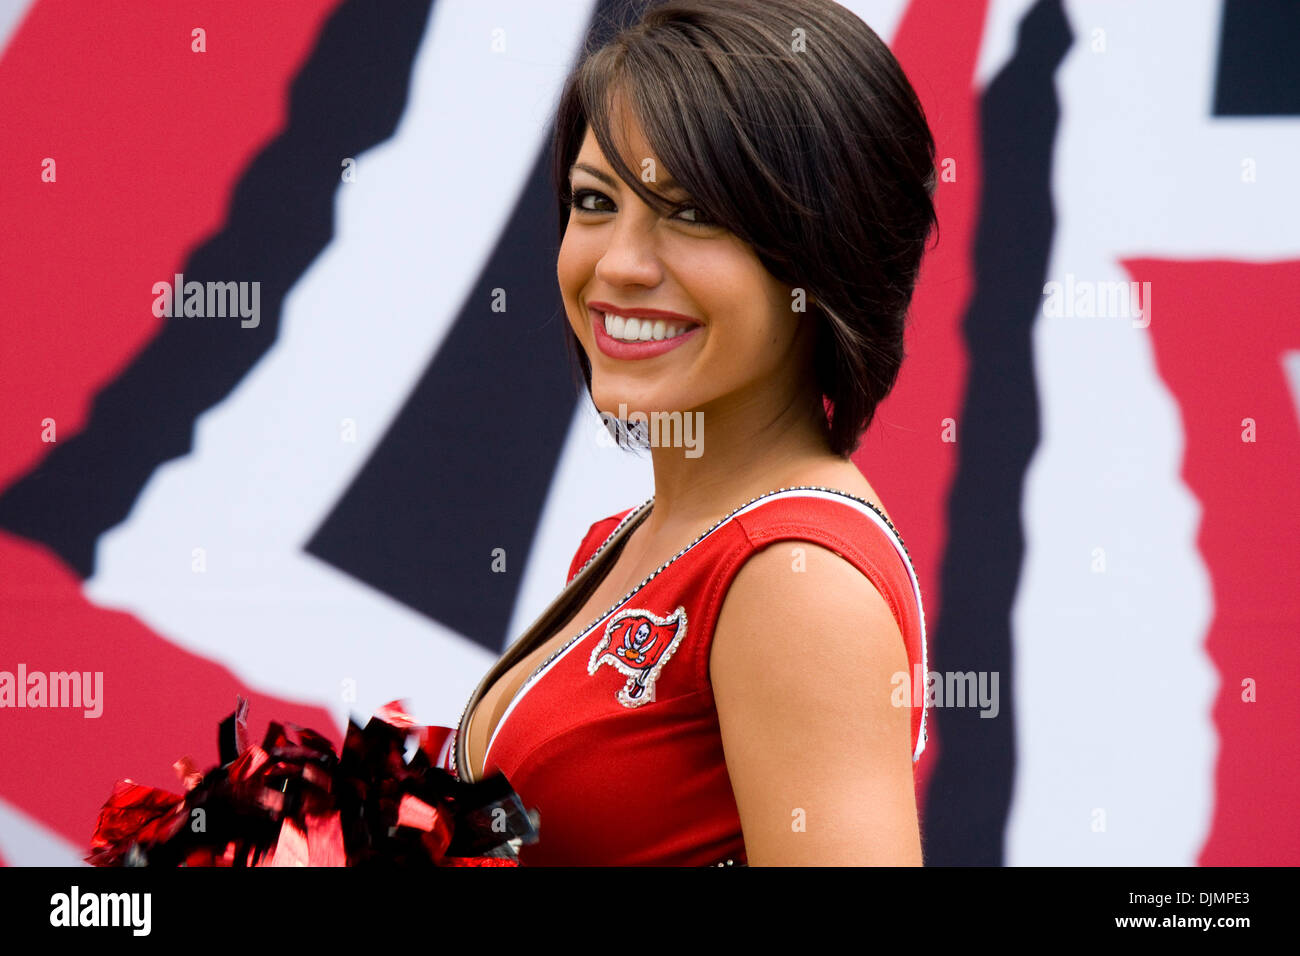 Sep. 26, 2010 - Tampa, Florida, United States of America - Tampa Bay Buccaneers cheerleaders prior to the game against Stock Photo